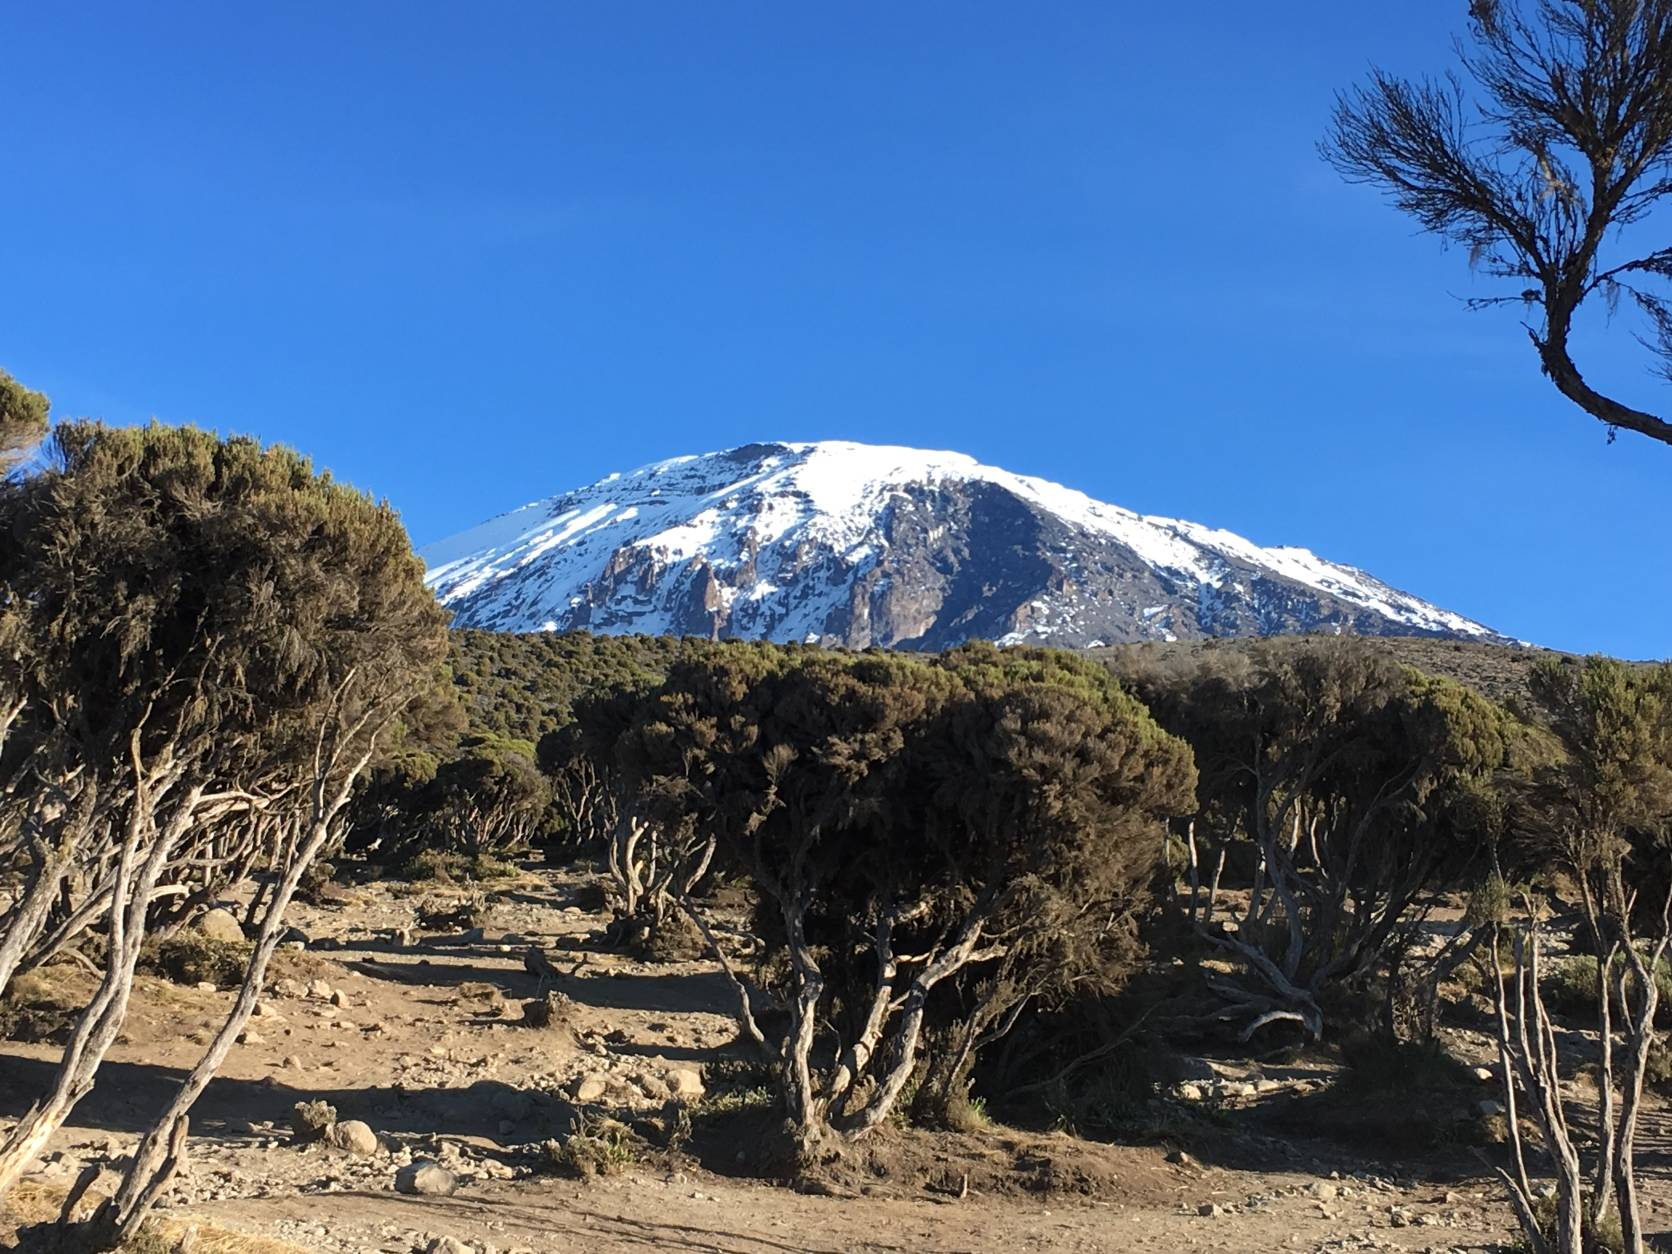 Kilimanjaro Northern Circuit Trail 2019